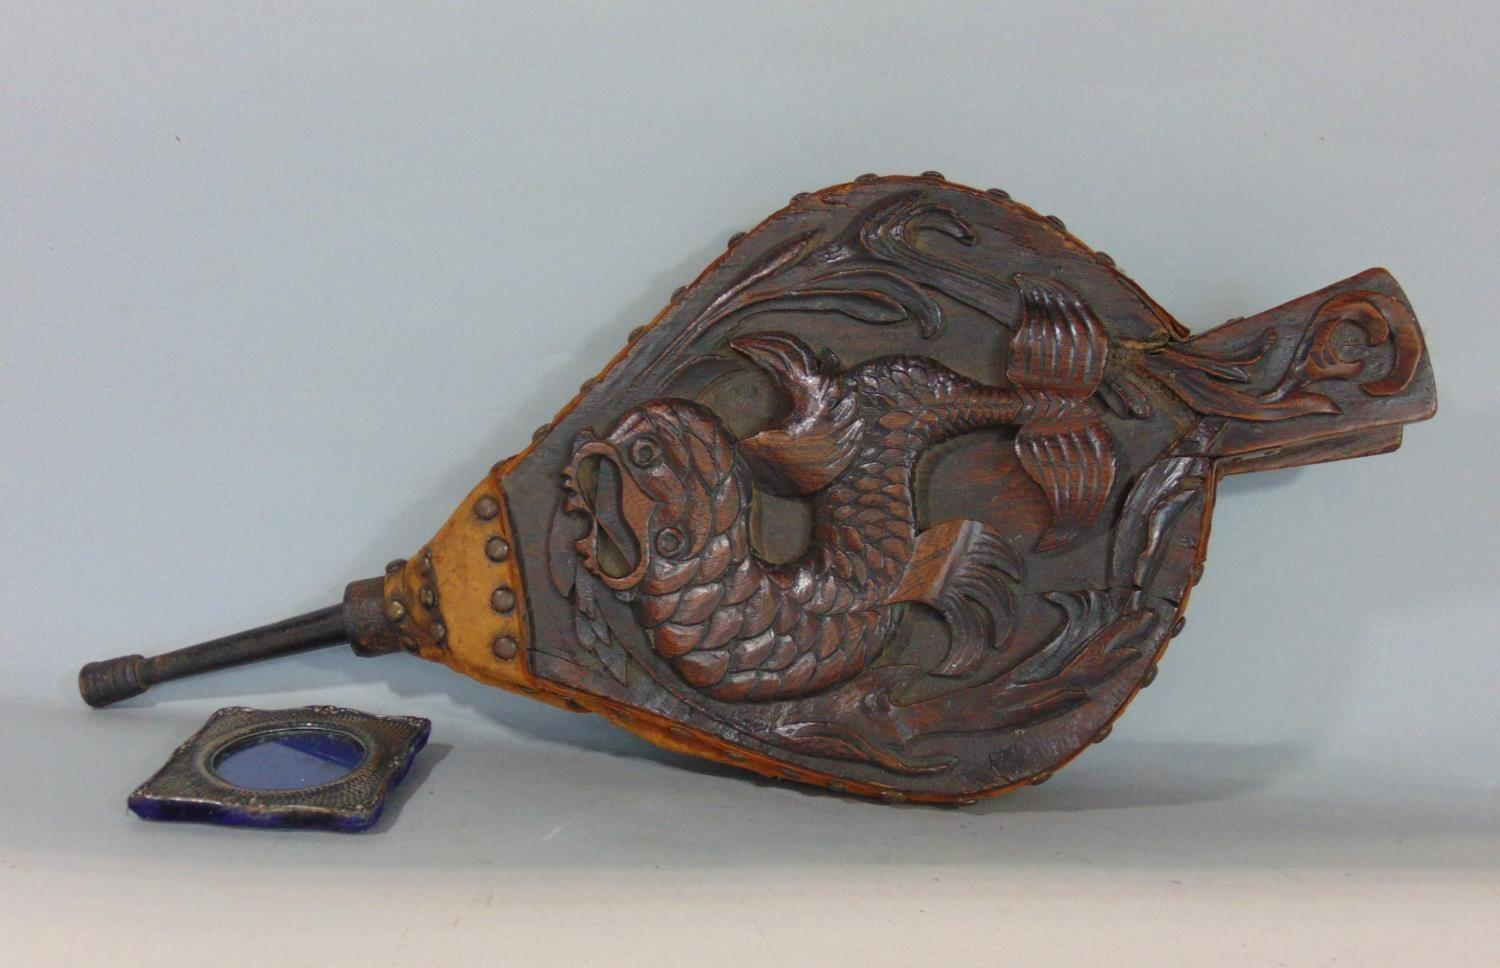 Pair of antique oak fire bellows carved with a coiled fish amidst reeds, with studded leather